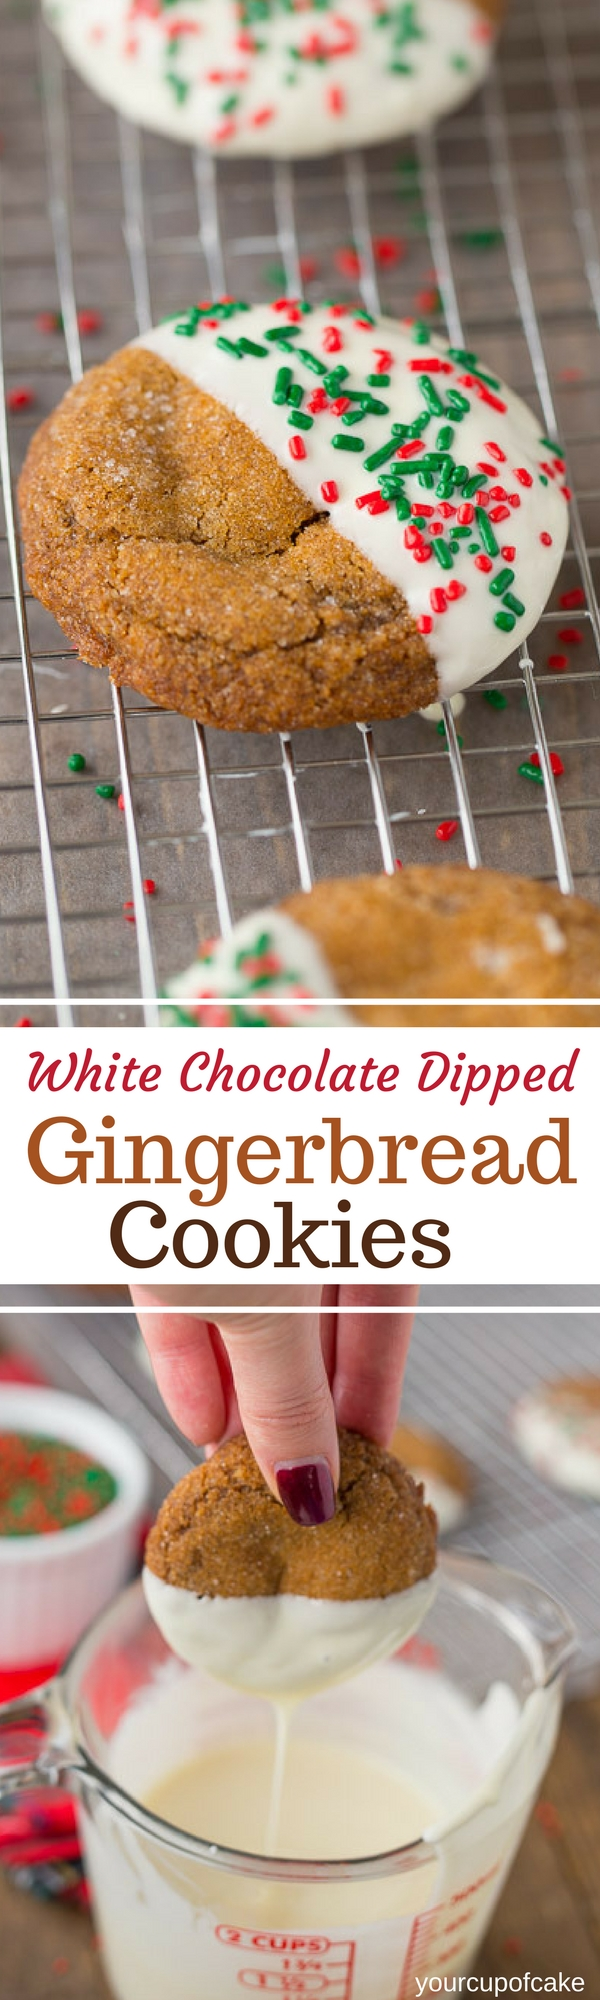 White Chocolate Dipped Gingerbread Cookies Your Cup Of Cake